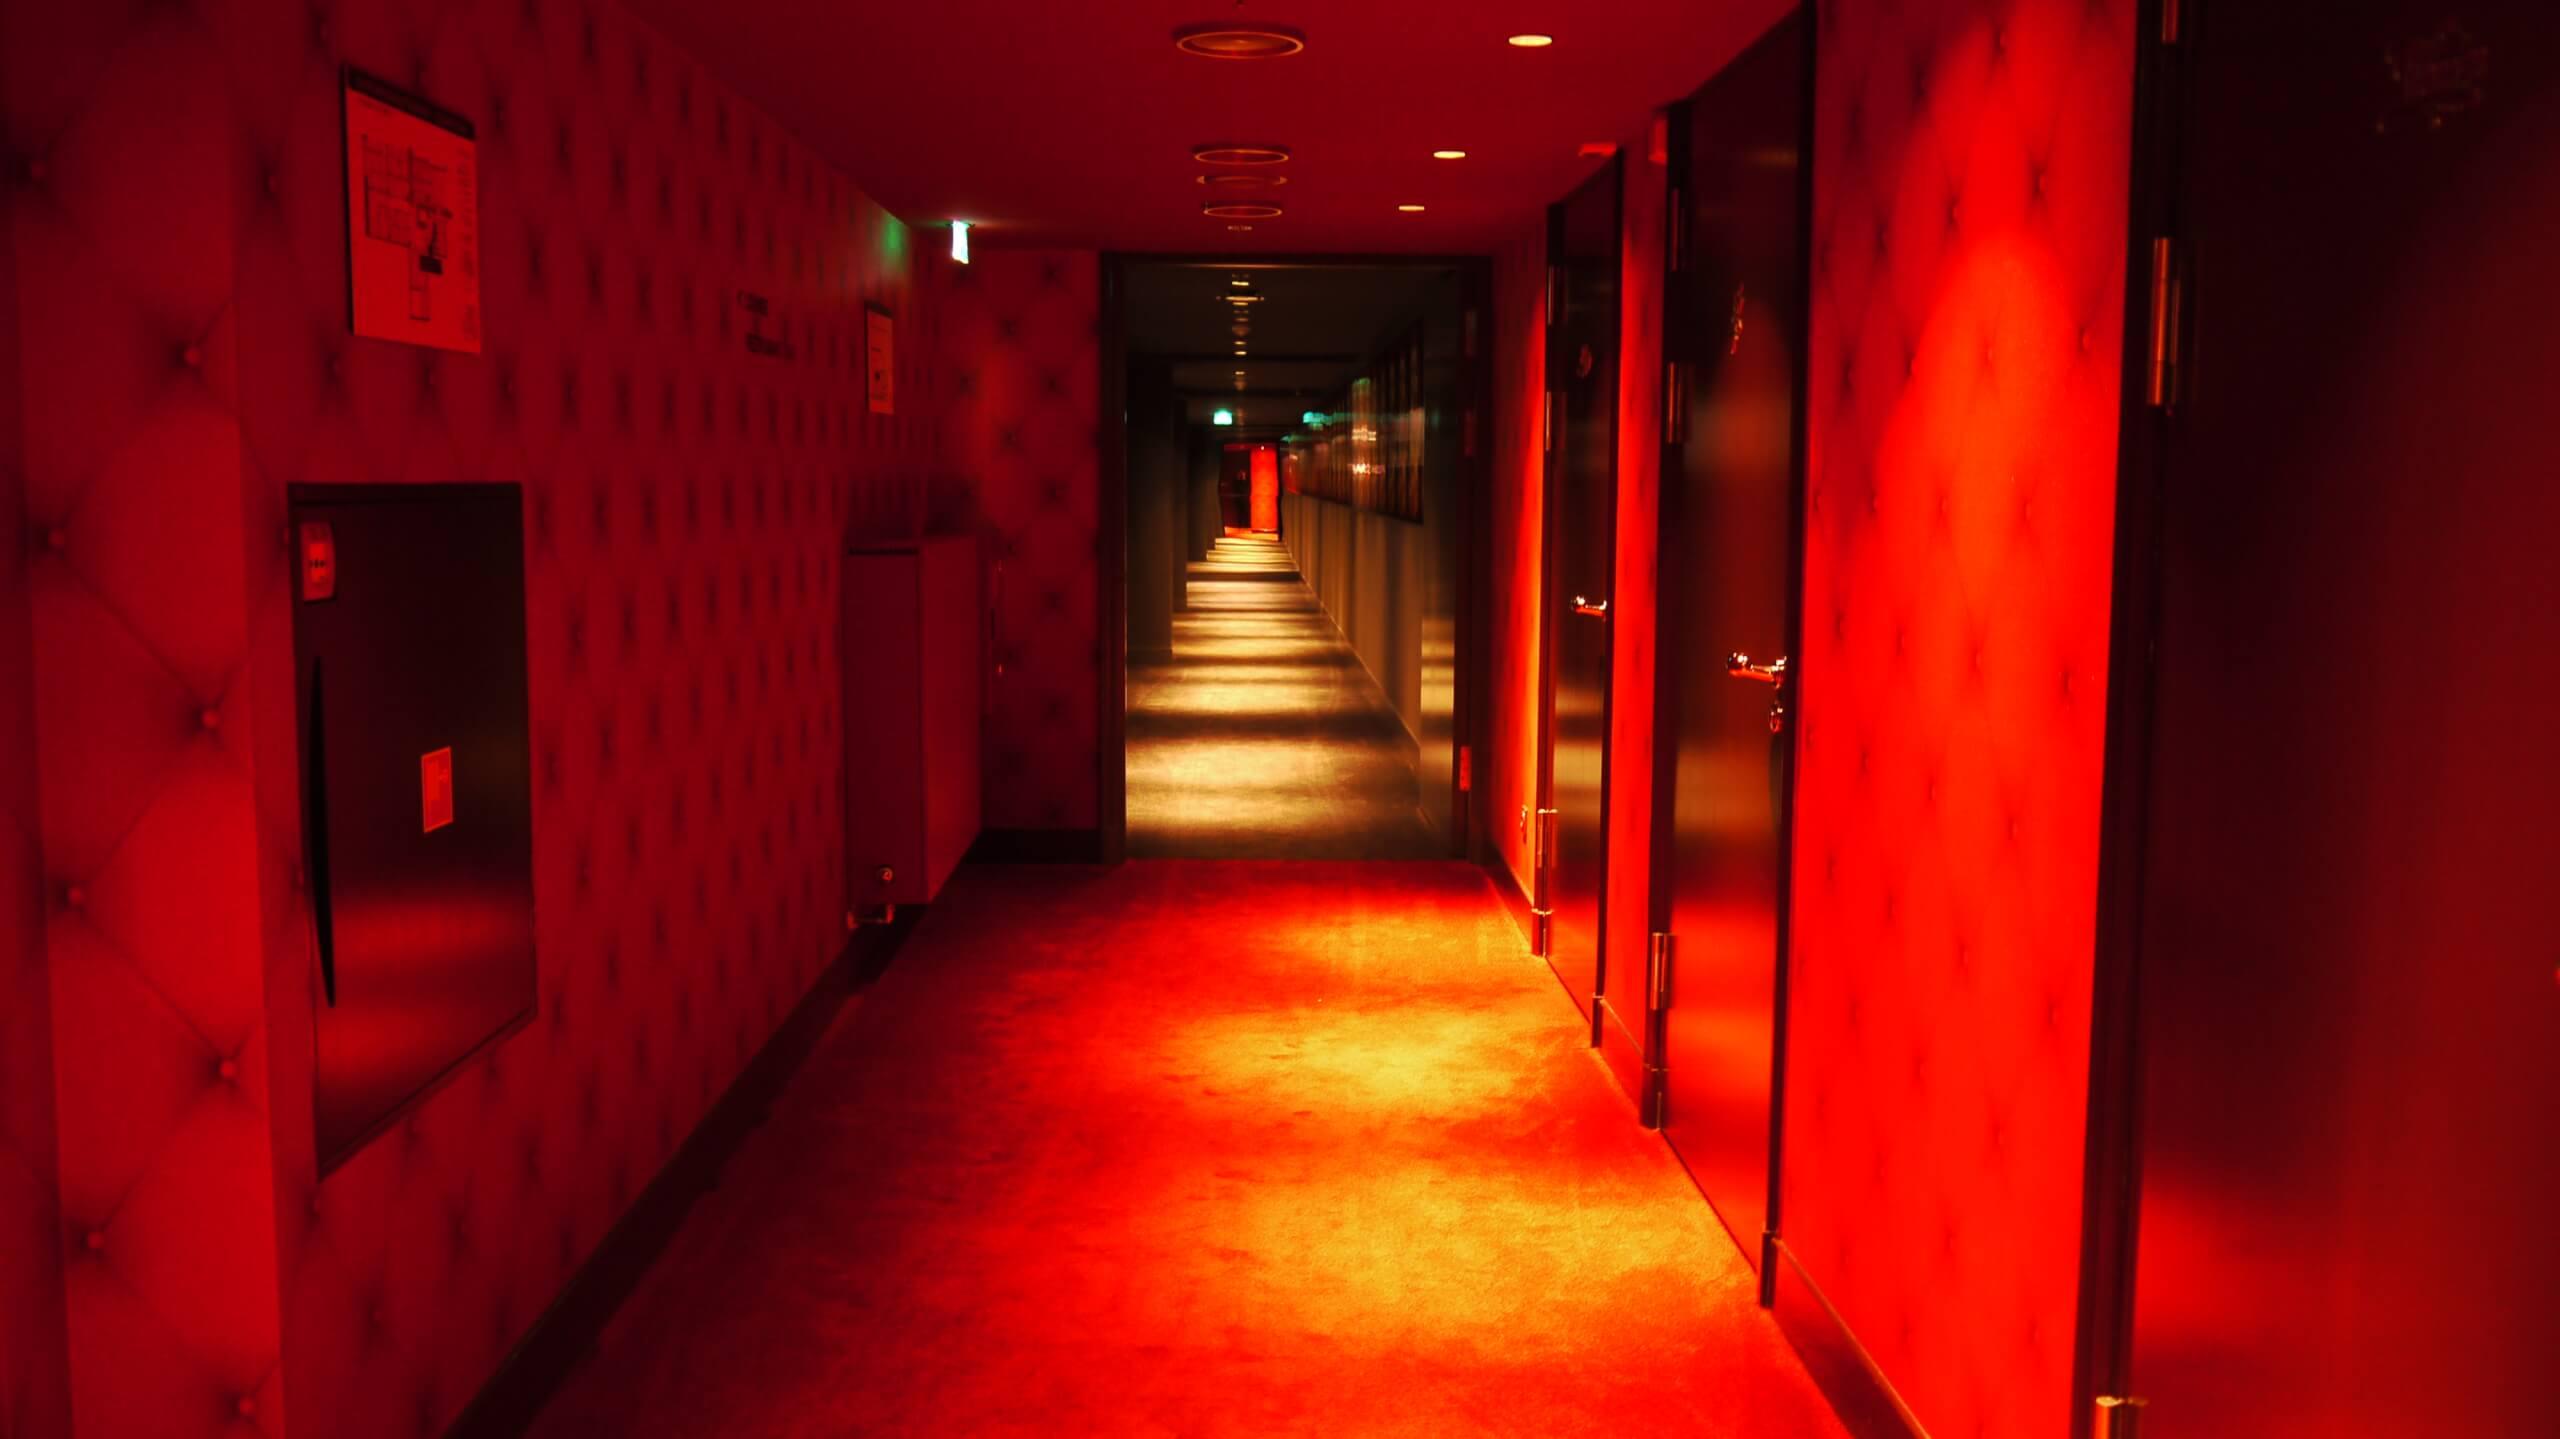 andaz, andaz hotel, amsterdam, high end, expensive, quirky, fun, cool, bedroom, suite, fish, wanders